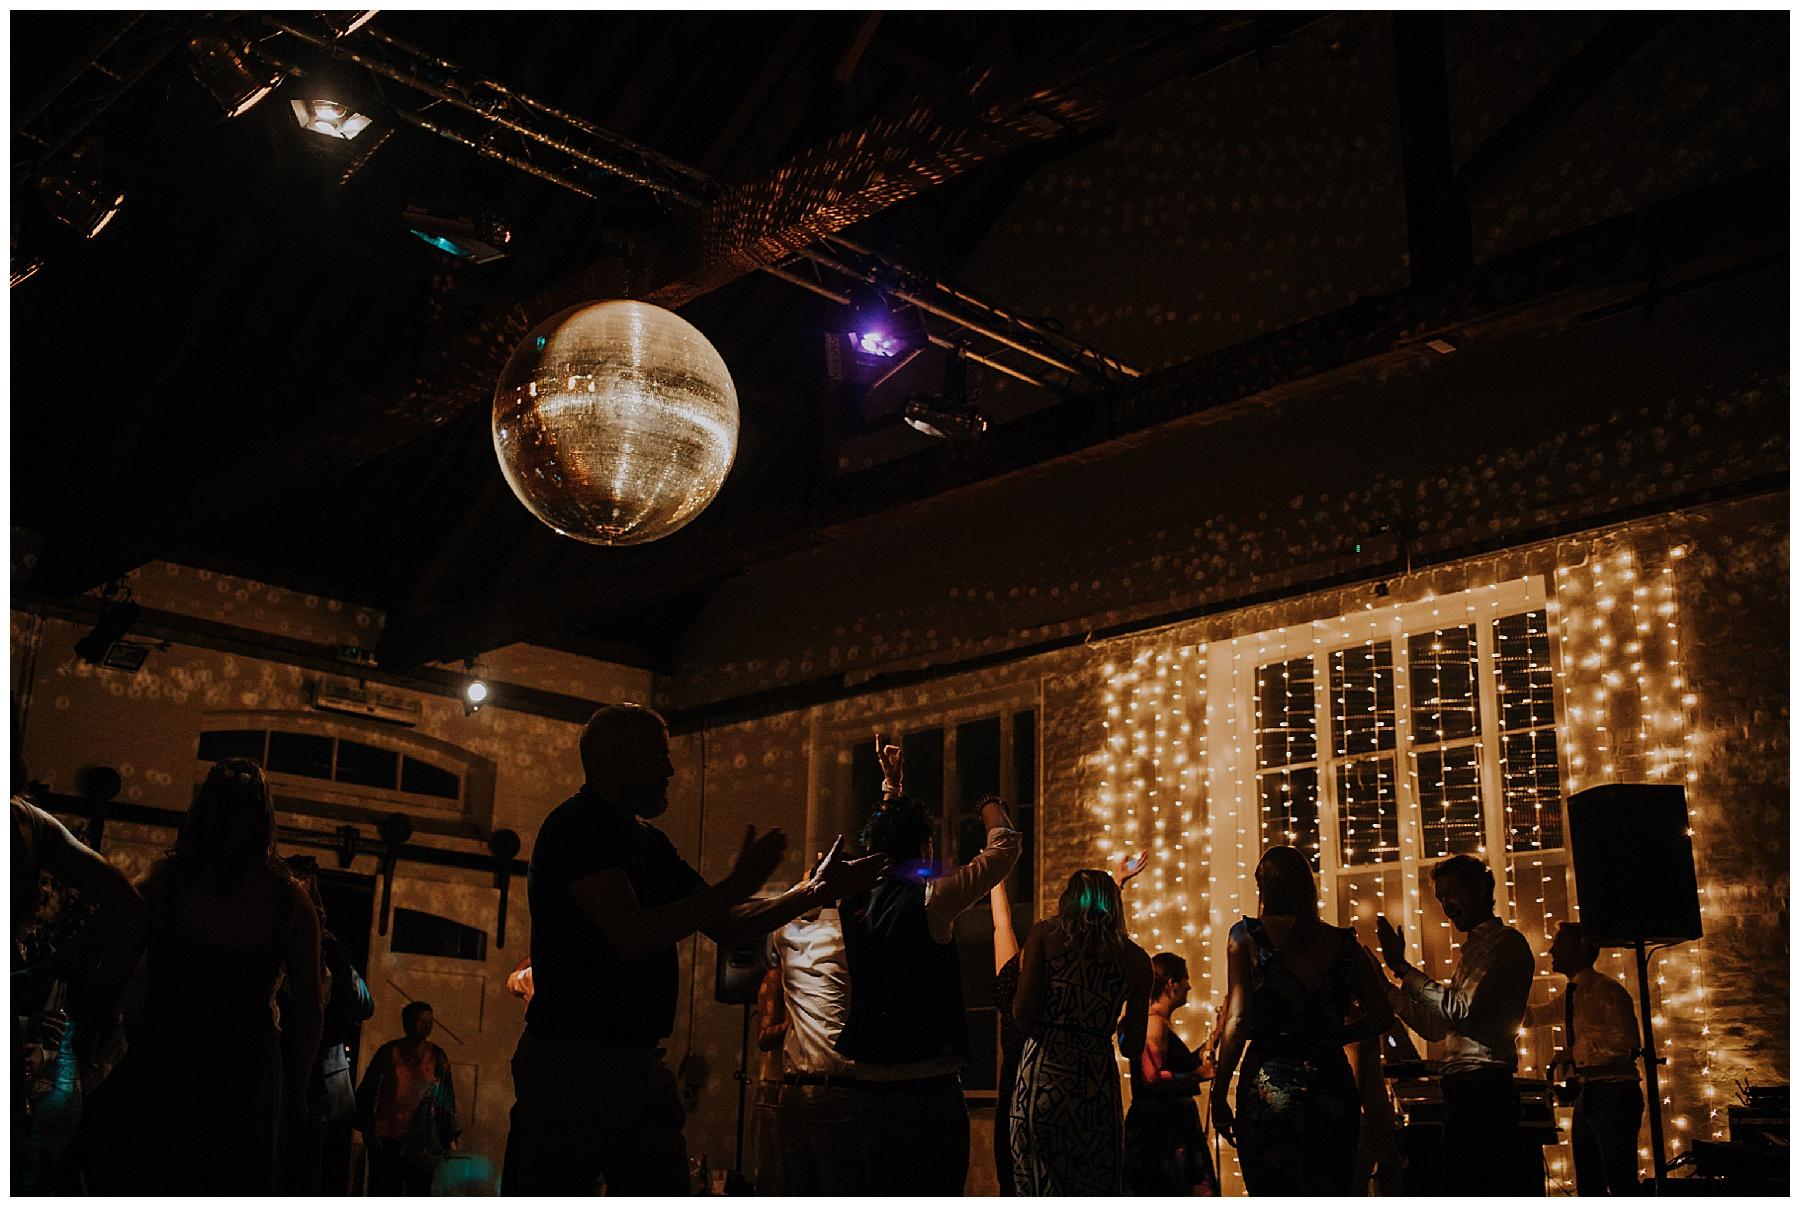 a large disco ball spins above partygoers